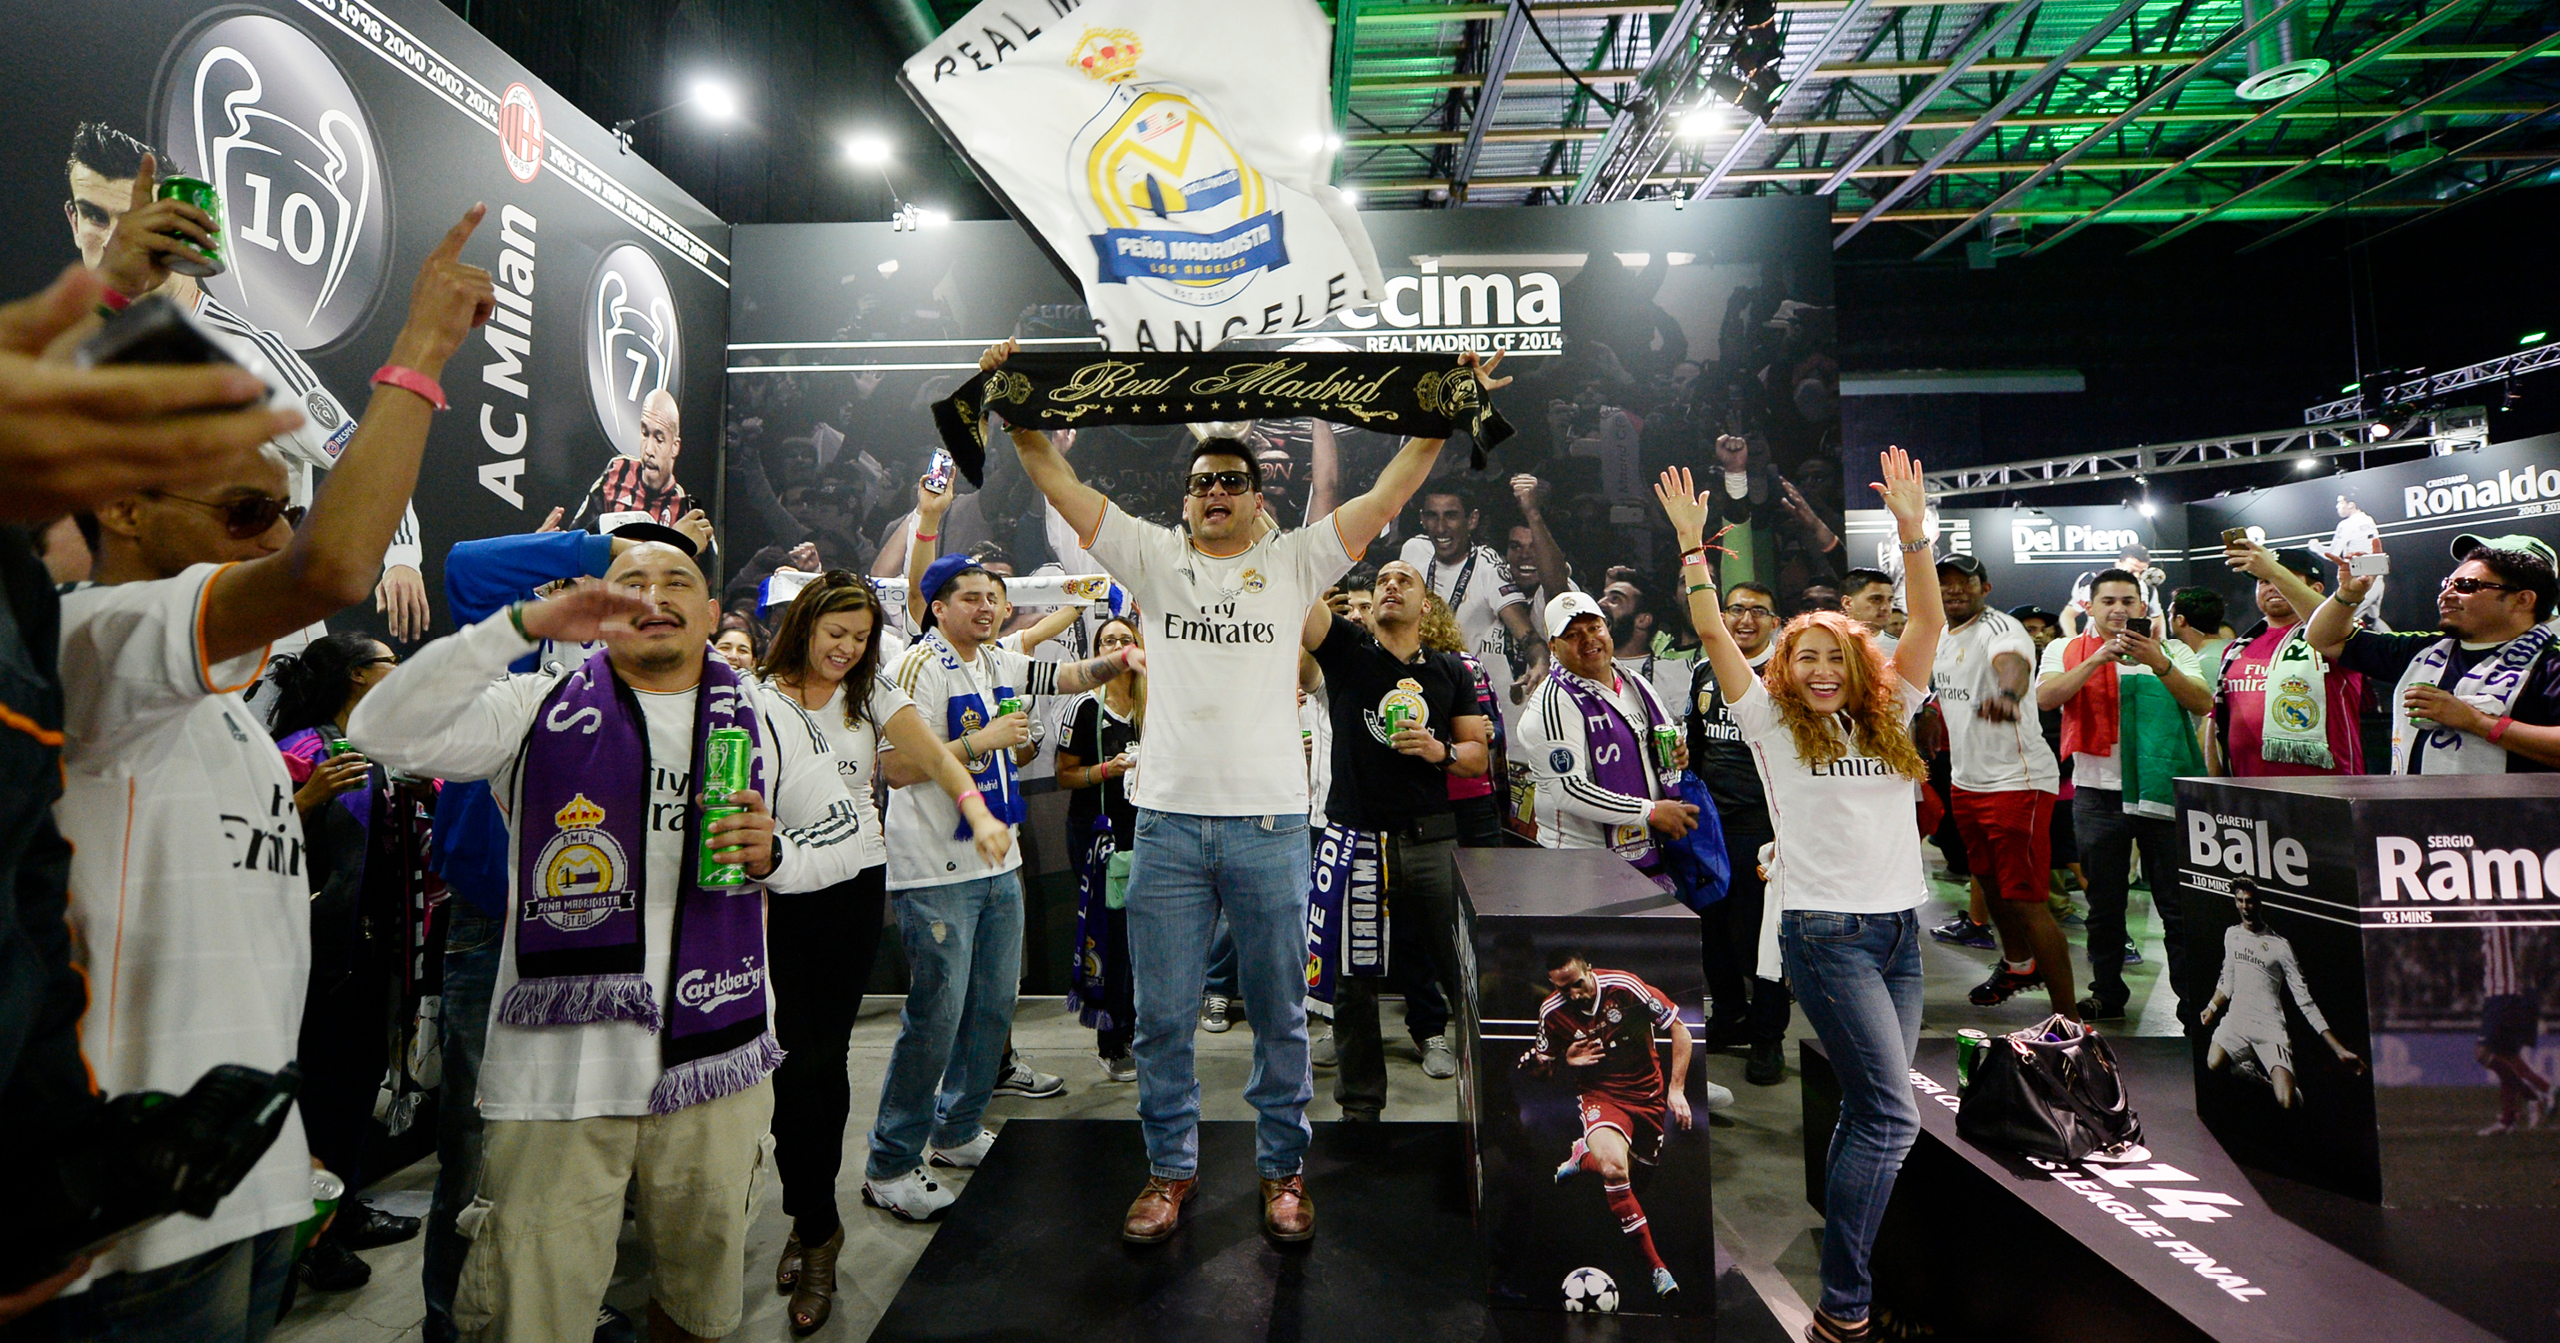 Wrightio_Heineken Trophy Tour_Real Madrid